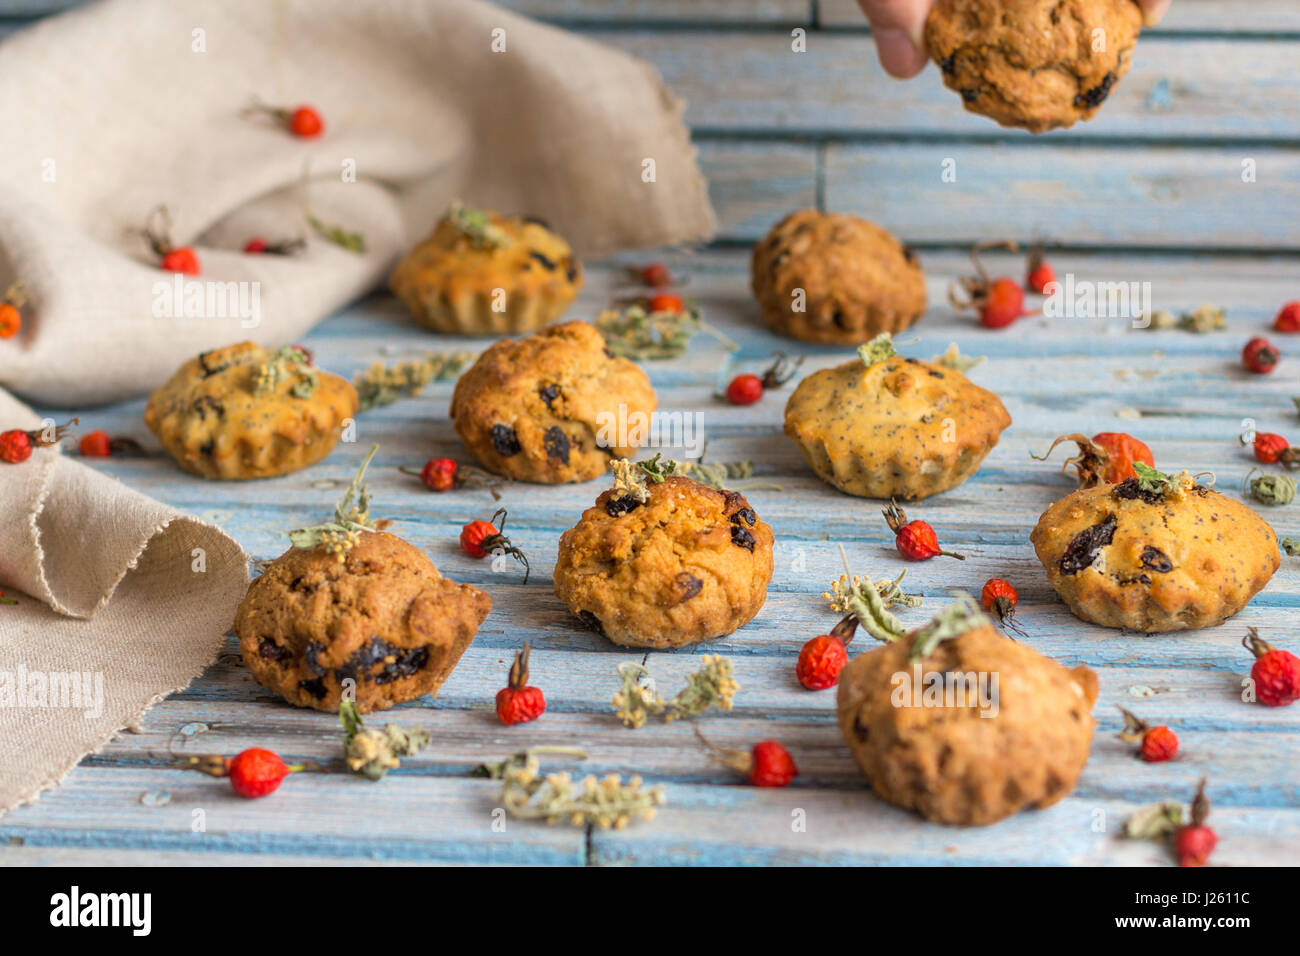 Fresh homemade delicious carrot muffins with raisins and dried fruits on a wooden background - Stock Image